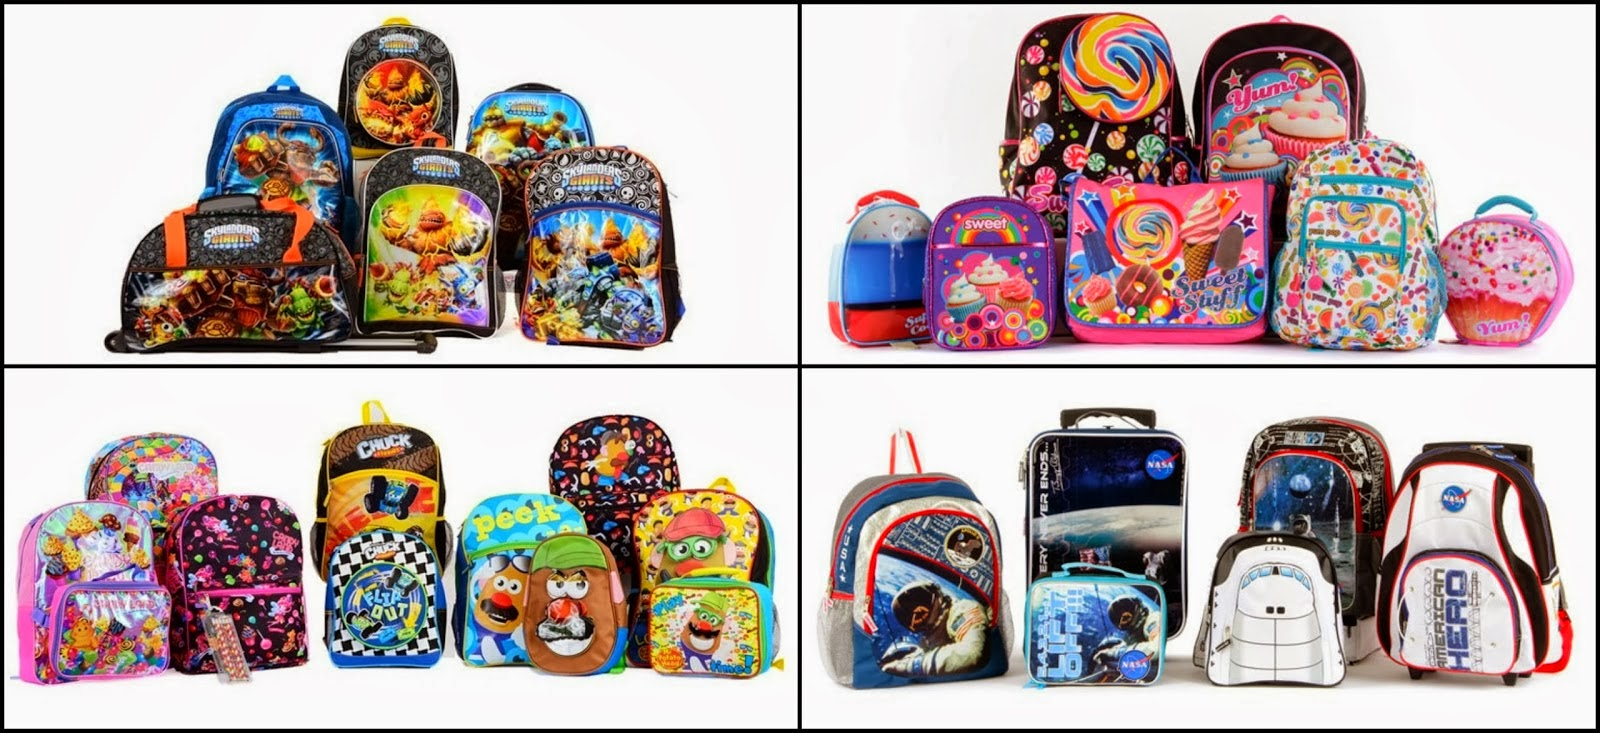 How cute are these? M big man would flip over those NASA backpacks ...